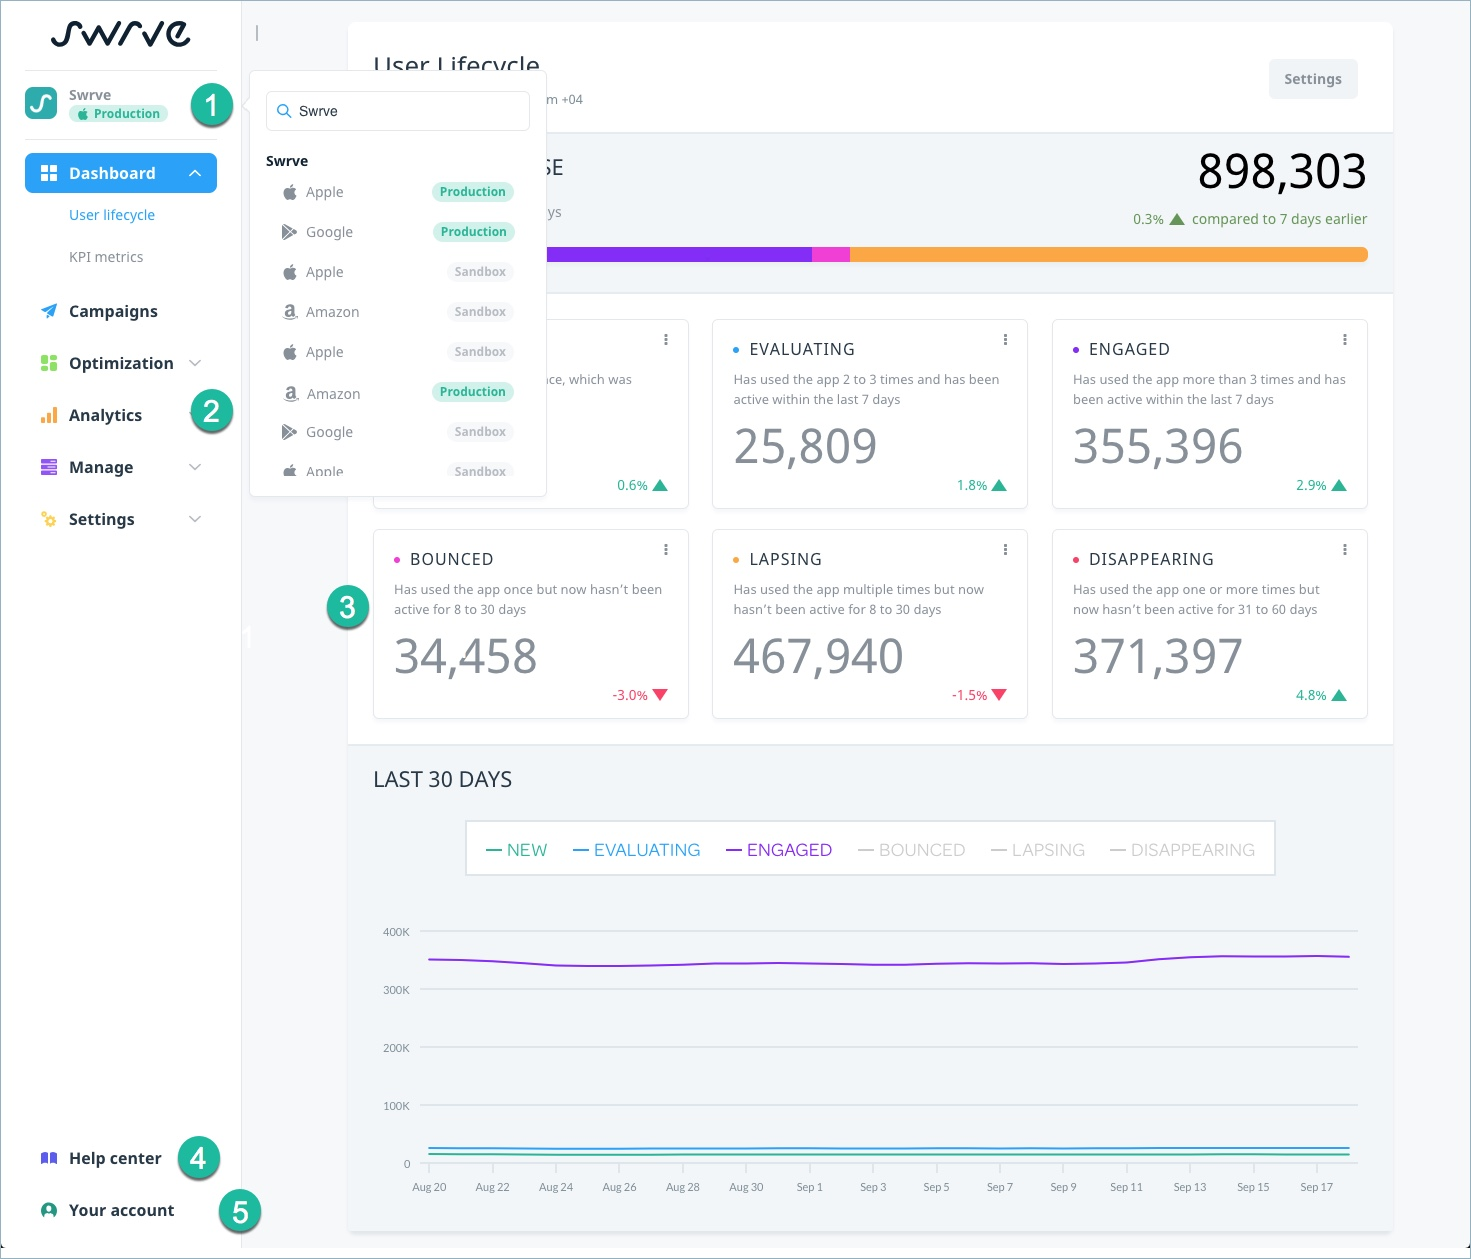 Overview of Swrve dashboard